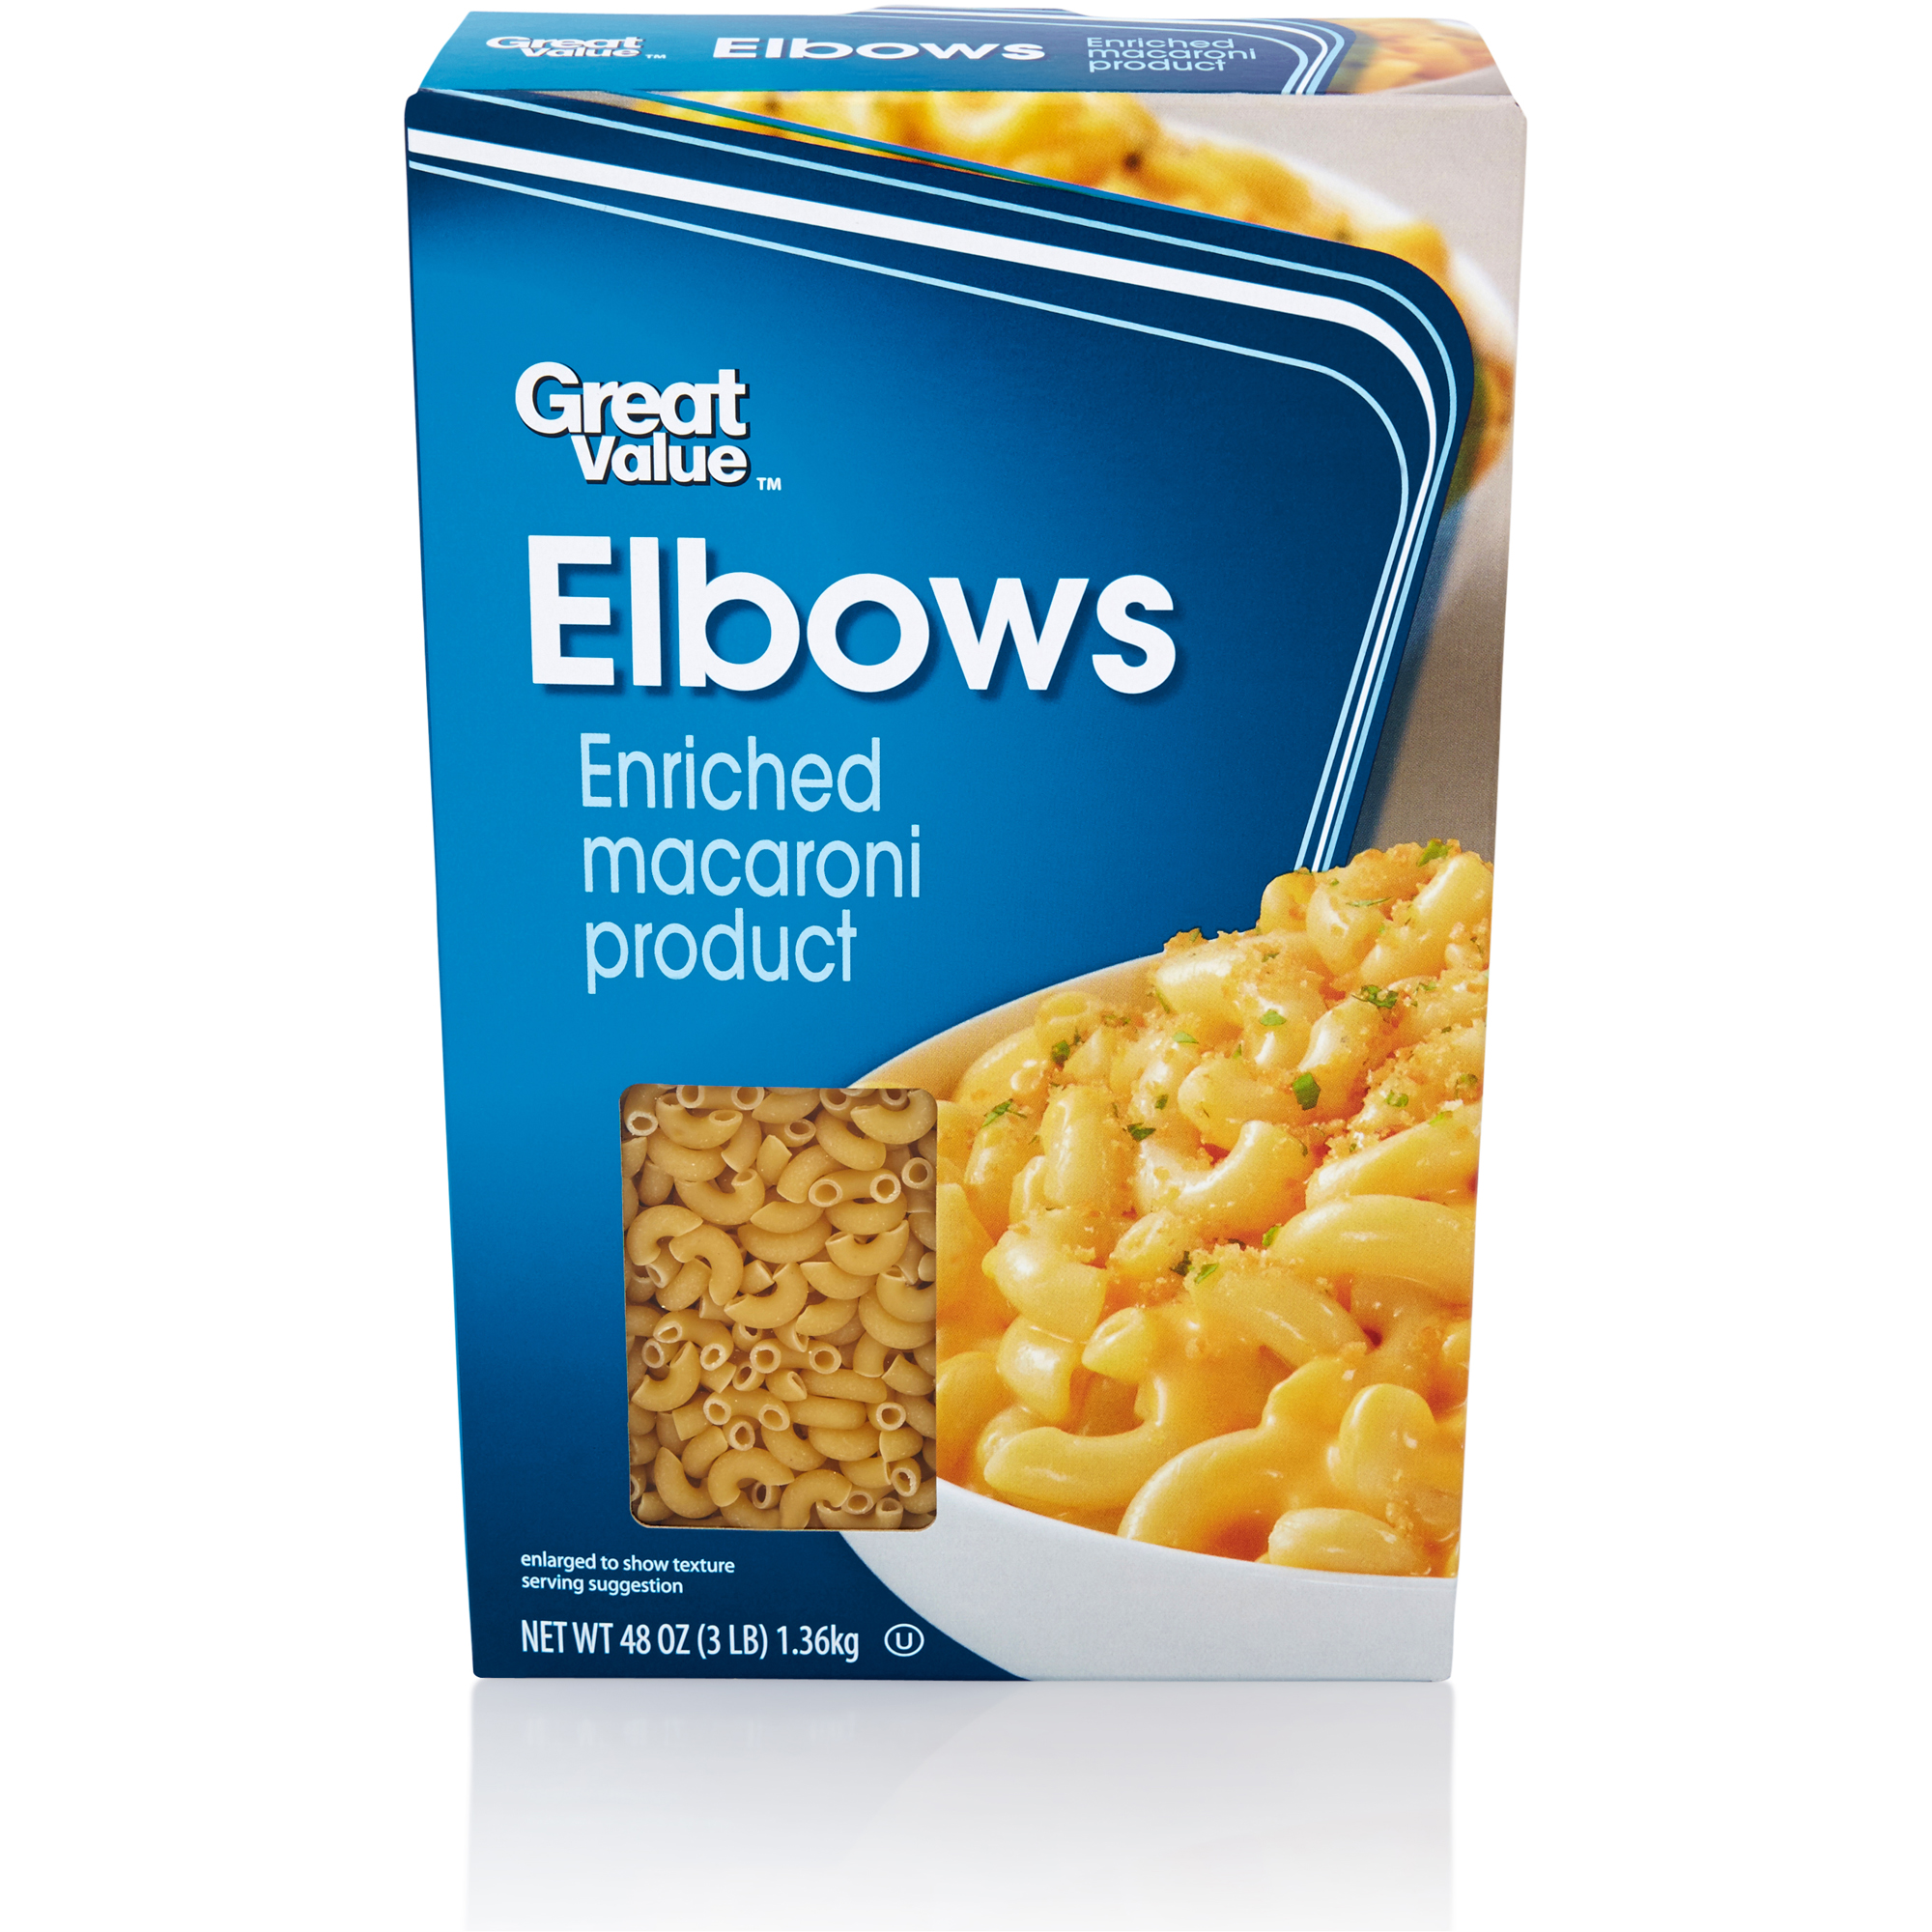 Great Value: Elbow Macaroni Enriched Macaroni Product, 3 Lb